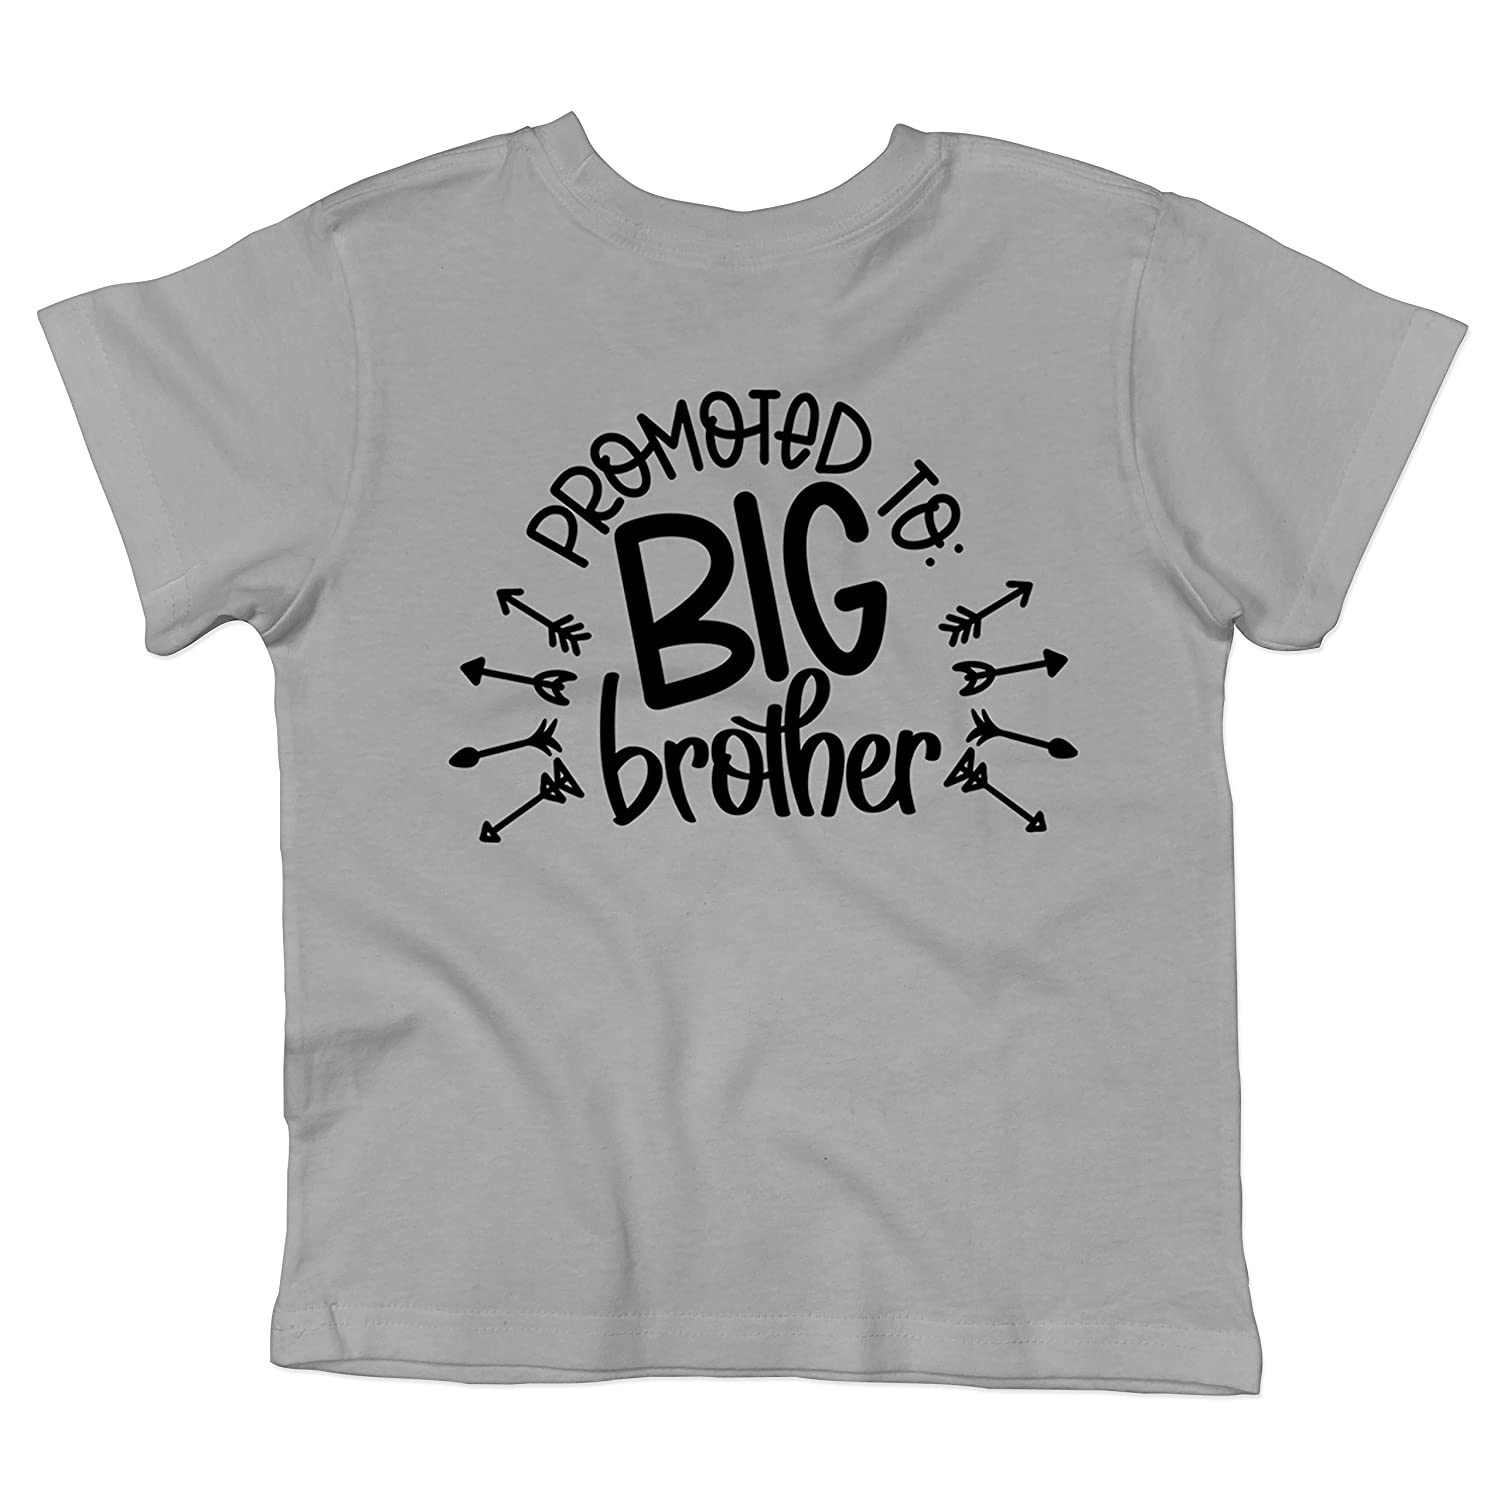 Promoted to Big Brother Announcement Shirt for Boys Big Brother Shirt for Toddler Boys